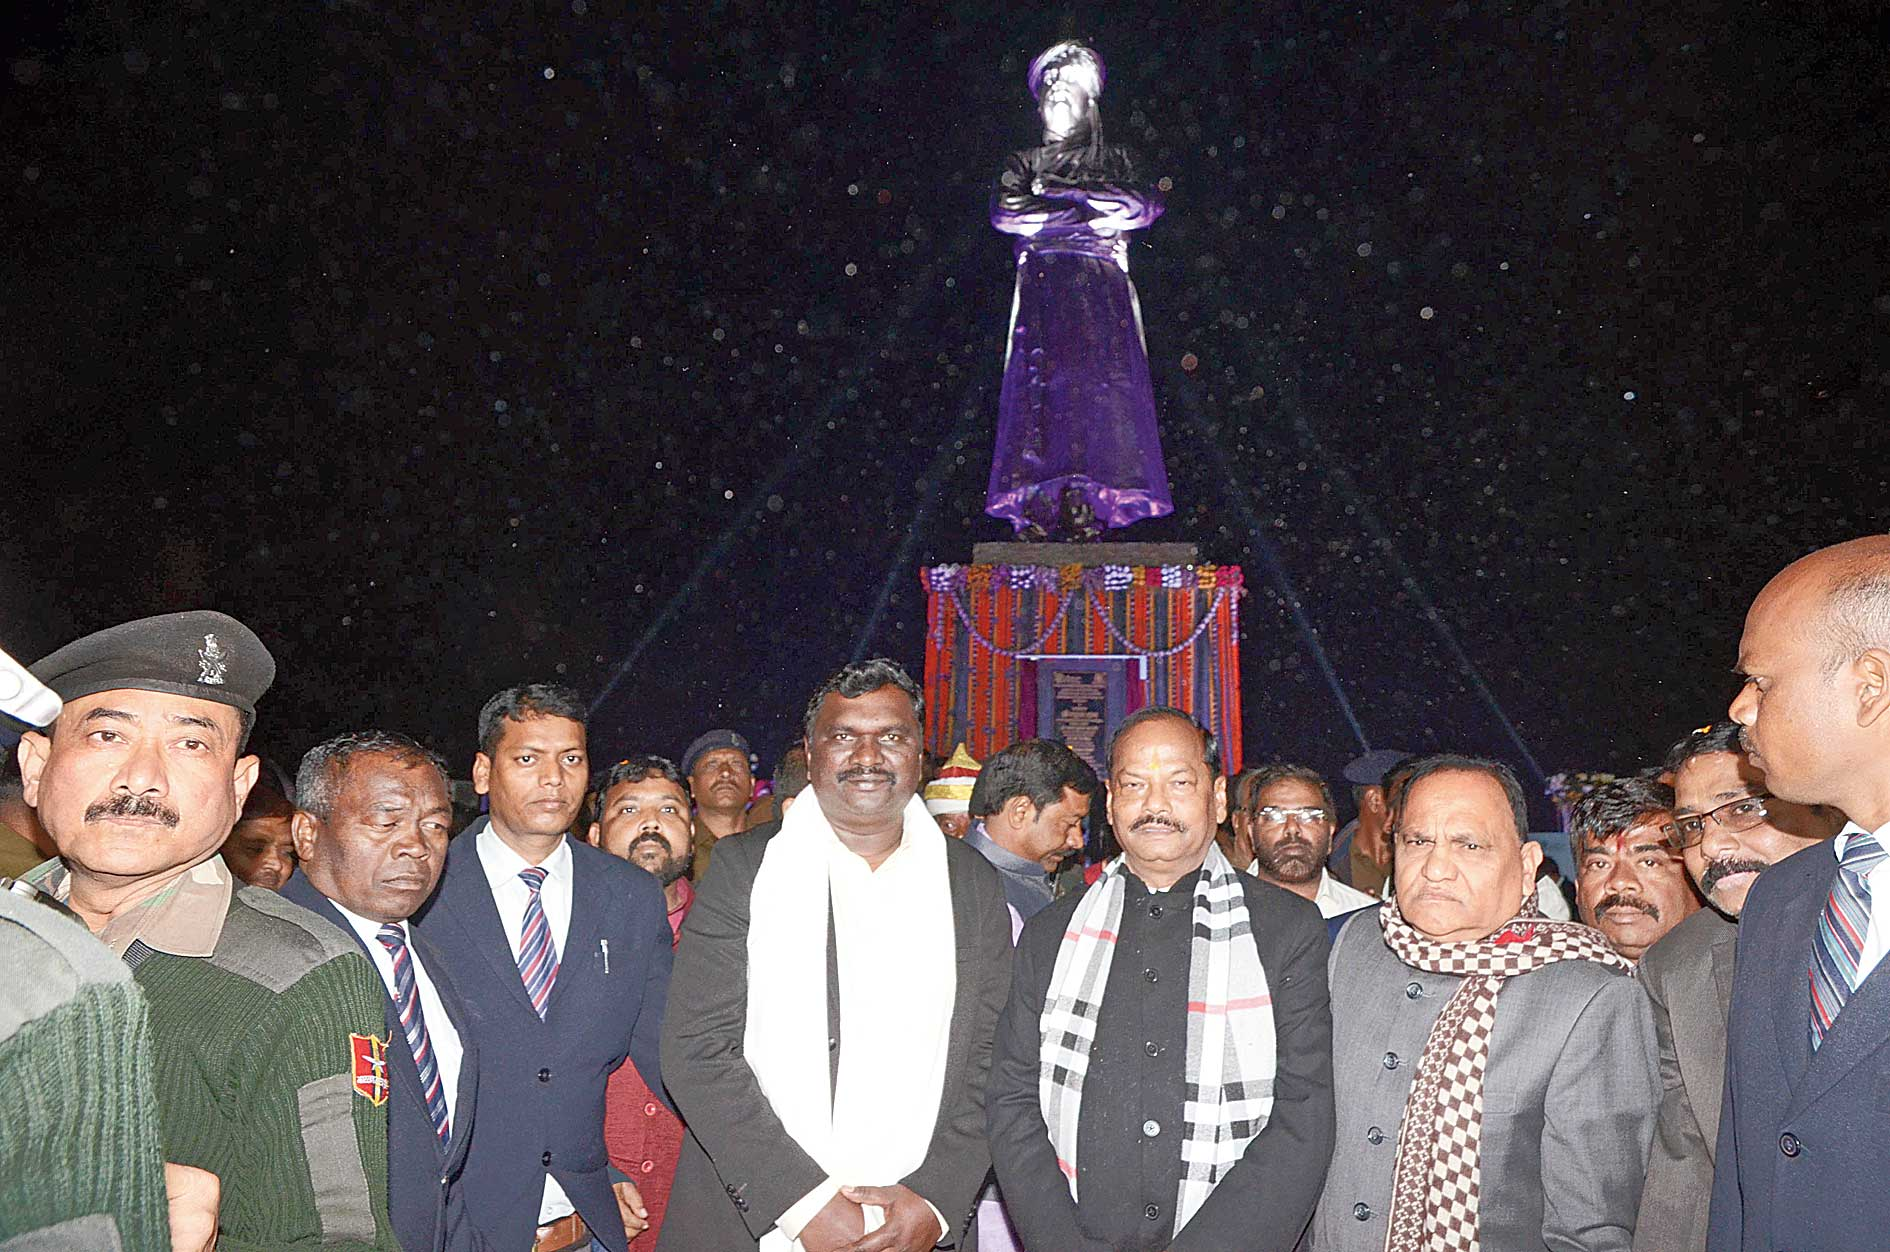 Ranchi's tribute to Vivekananda stands tall